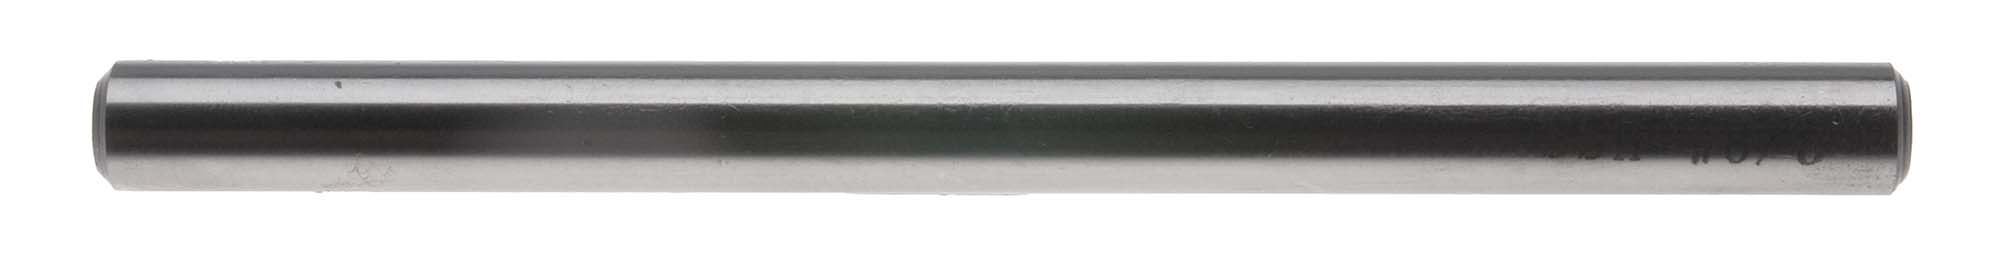 "25/64"" Jobber Length Drill Blank - High Speed Steel"